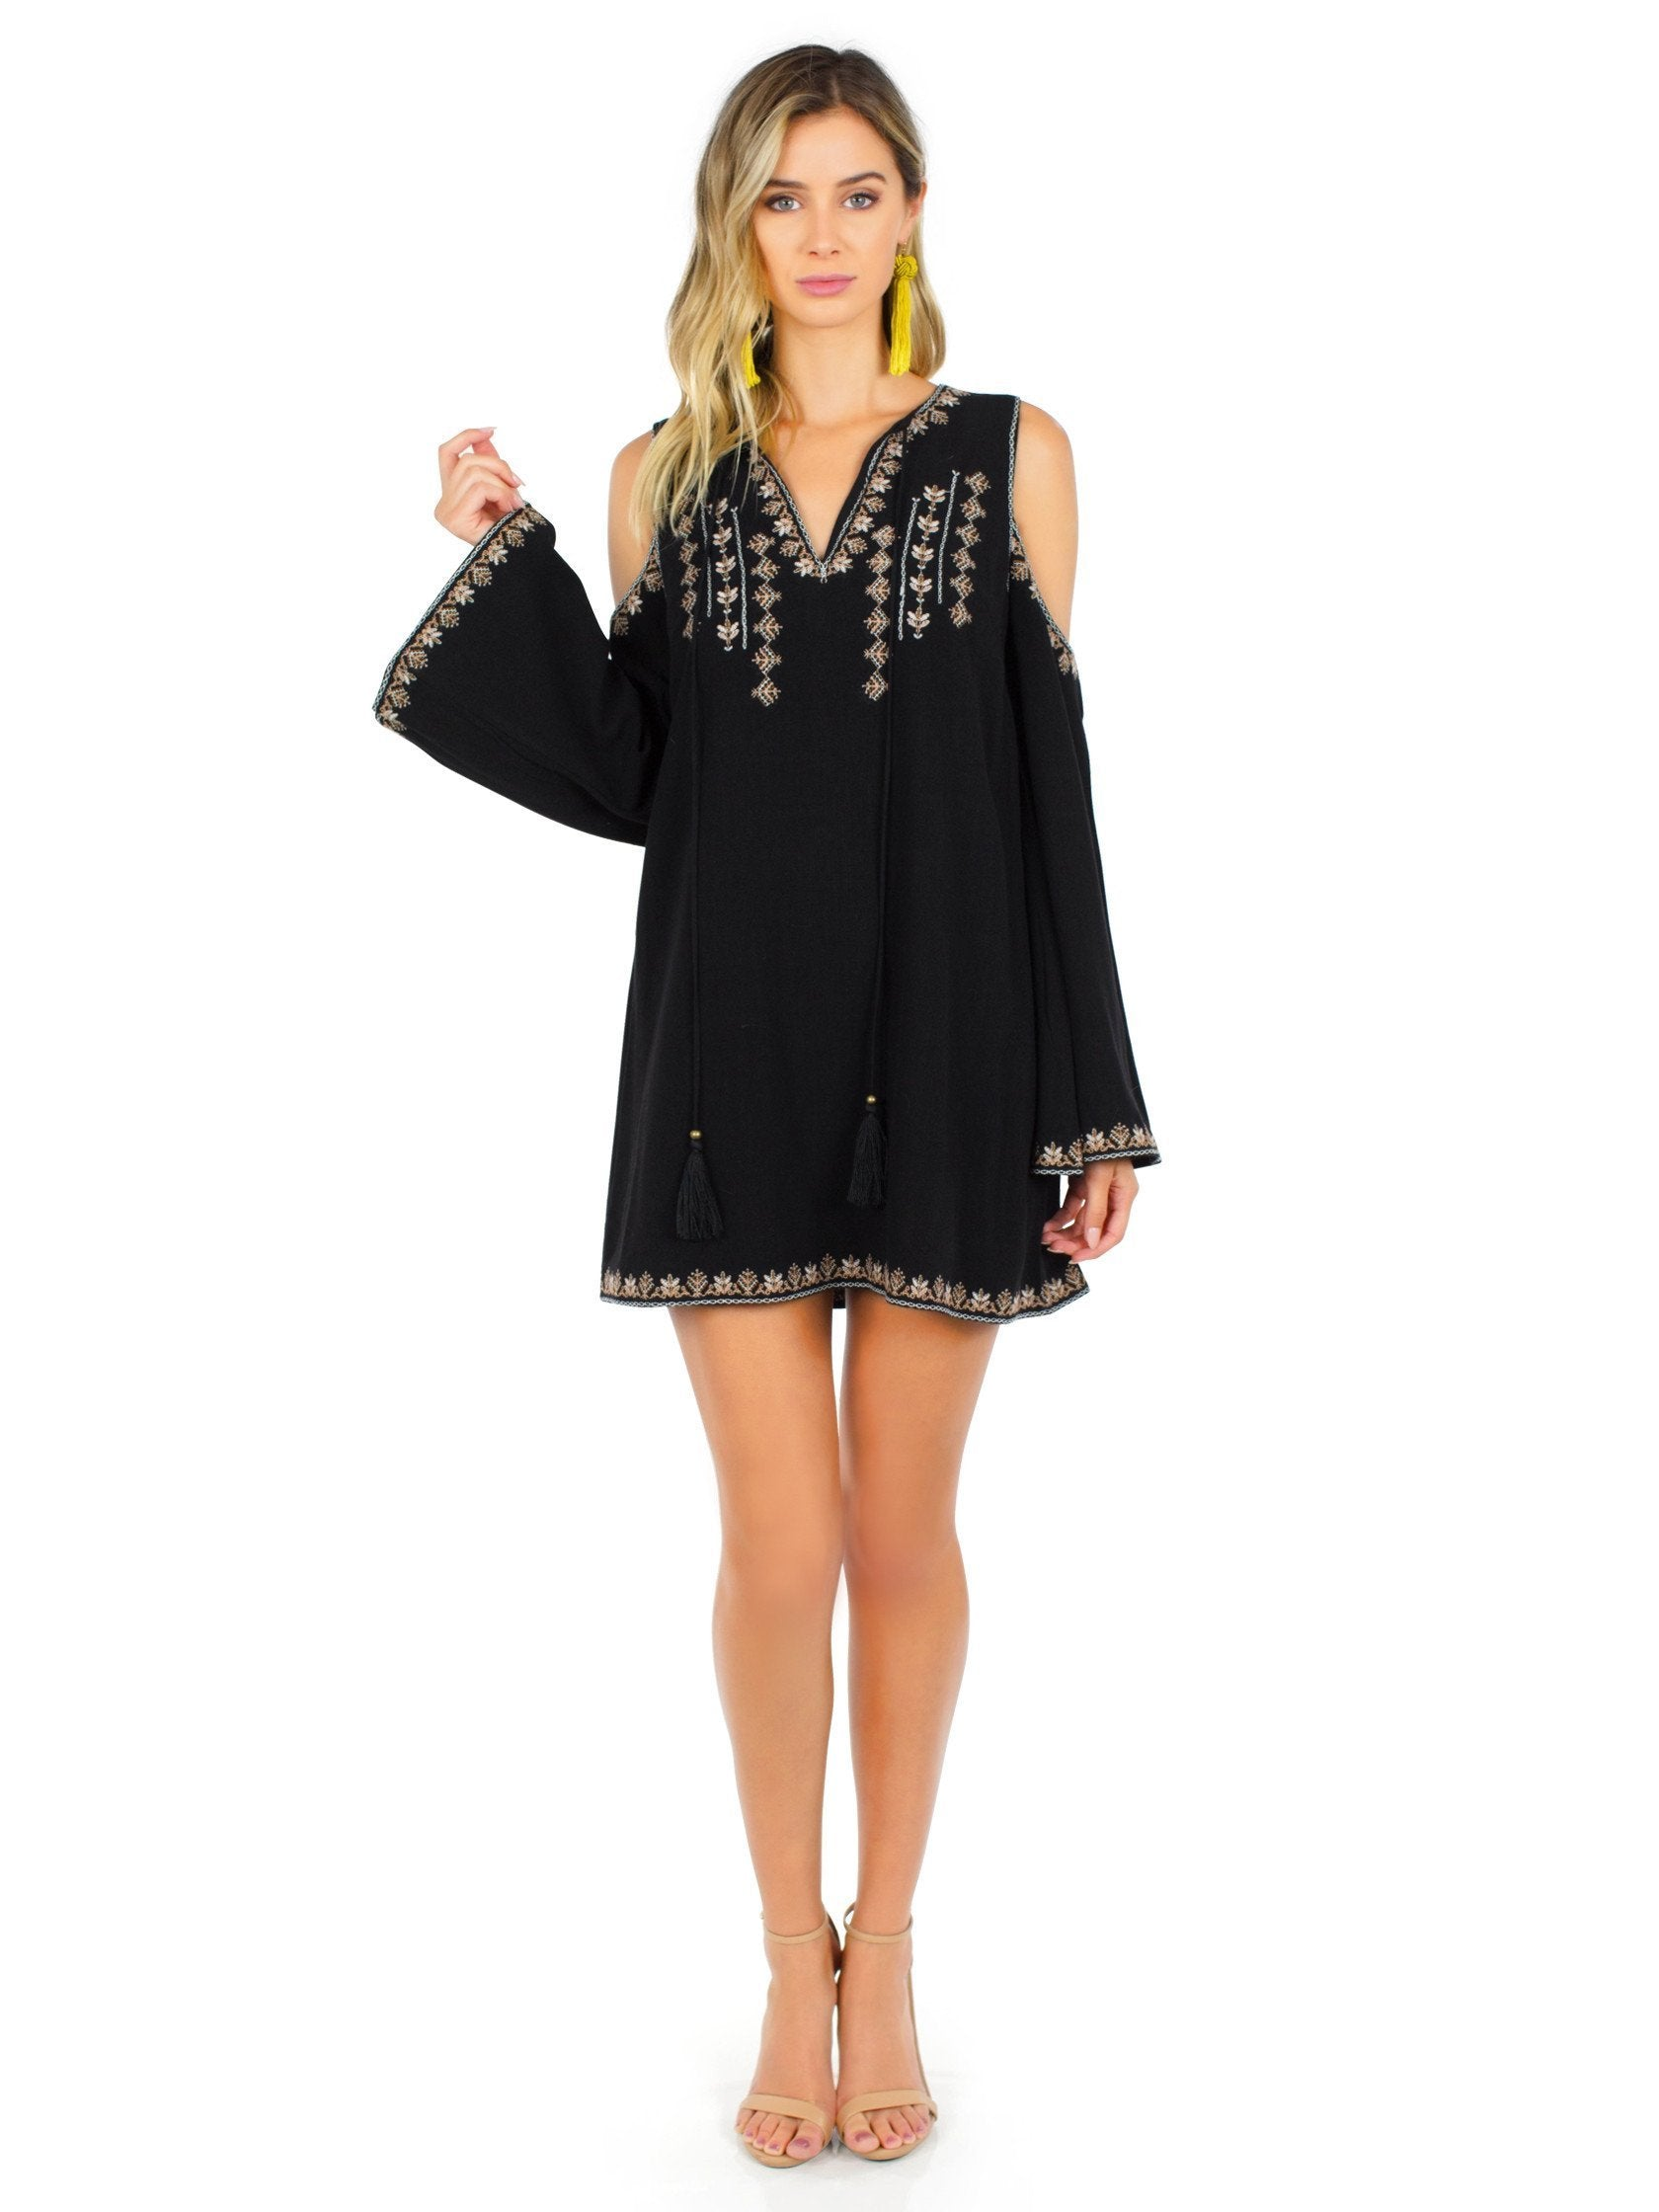 Girl outfit in a dress rental from Moon River called Cold Shoulder Dress